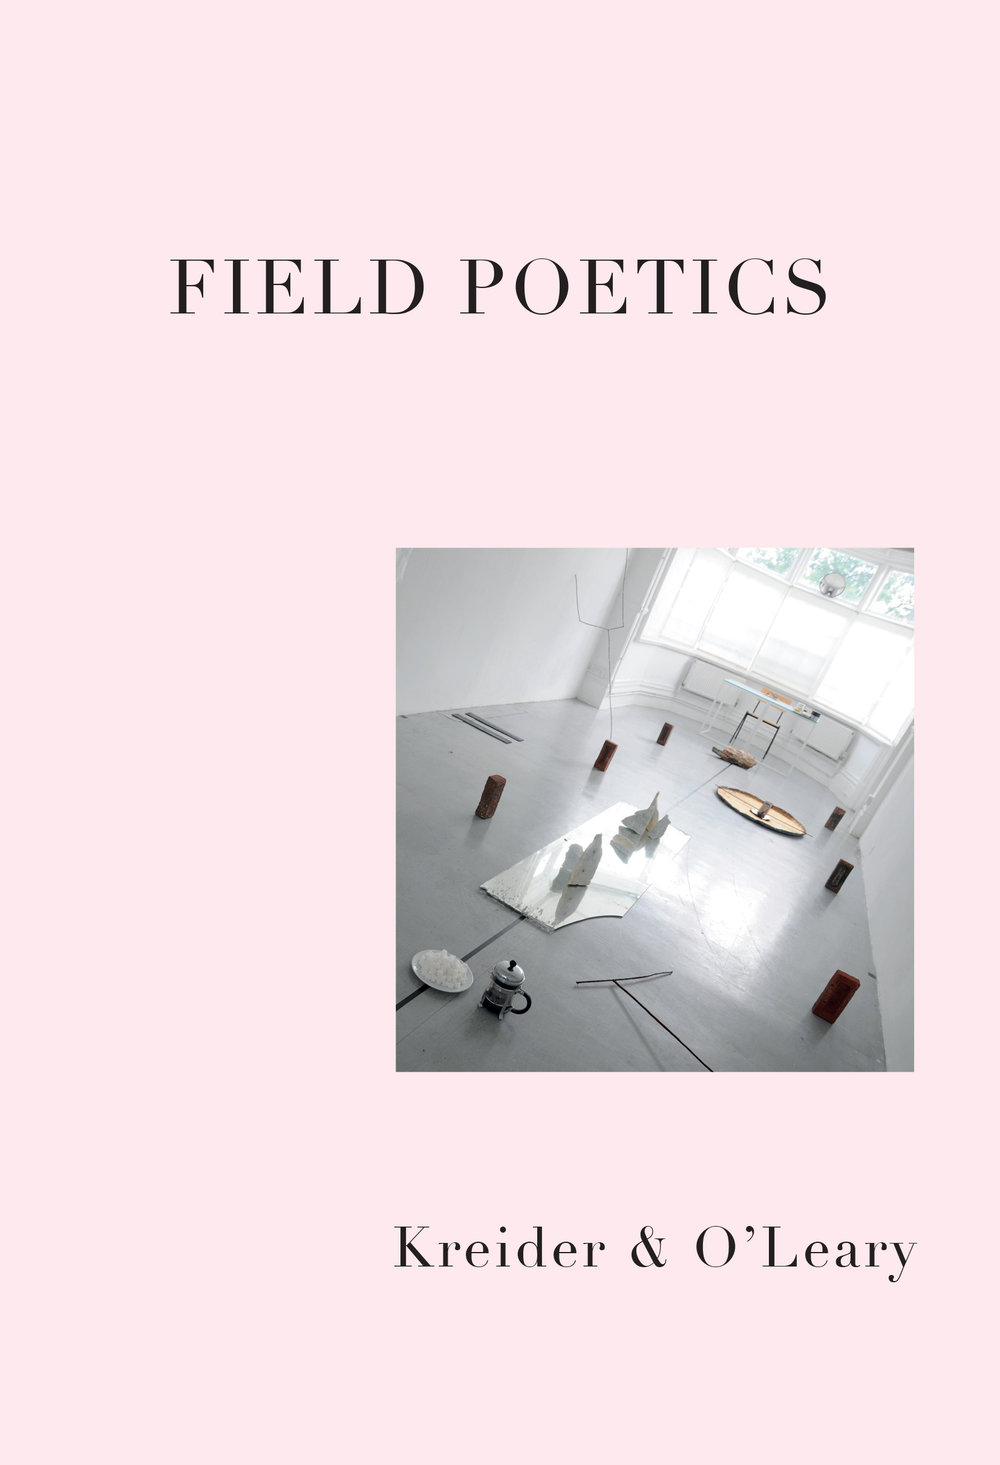 FIELD POETICS CoverONLY-FINAL.jpg